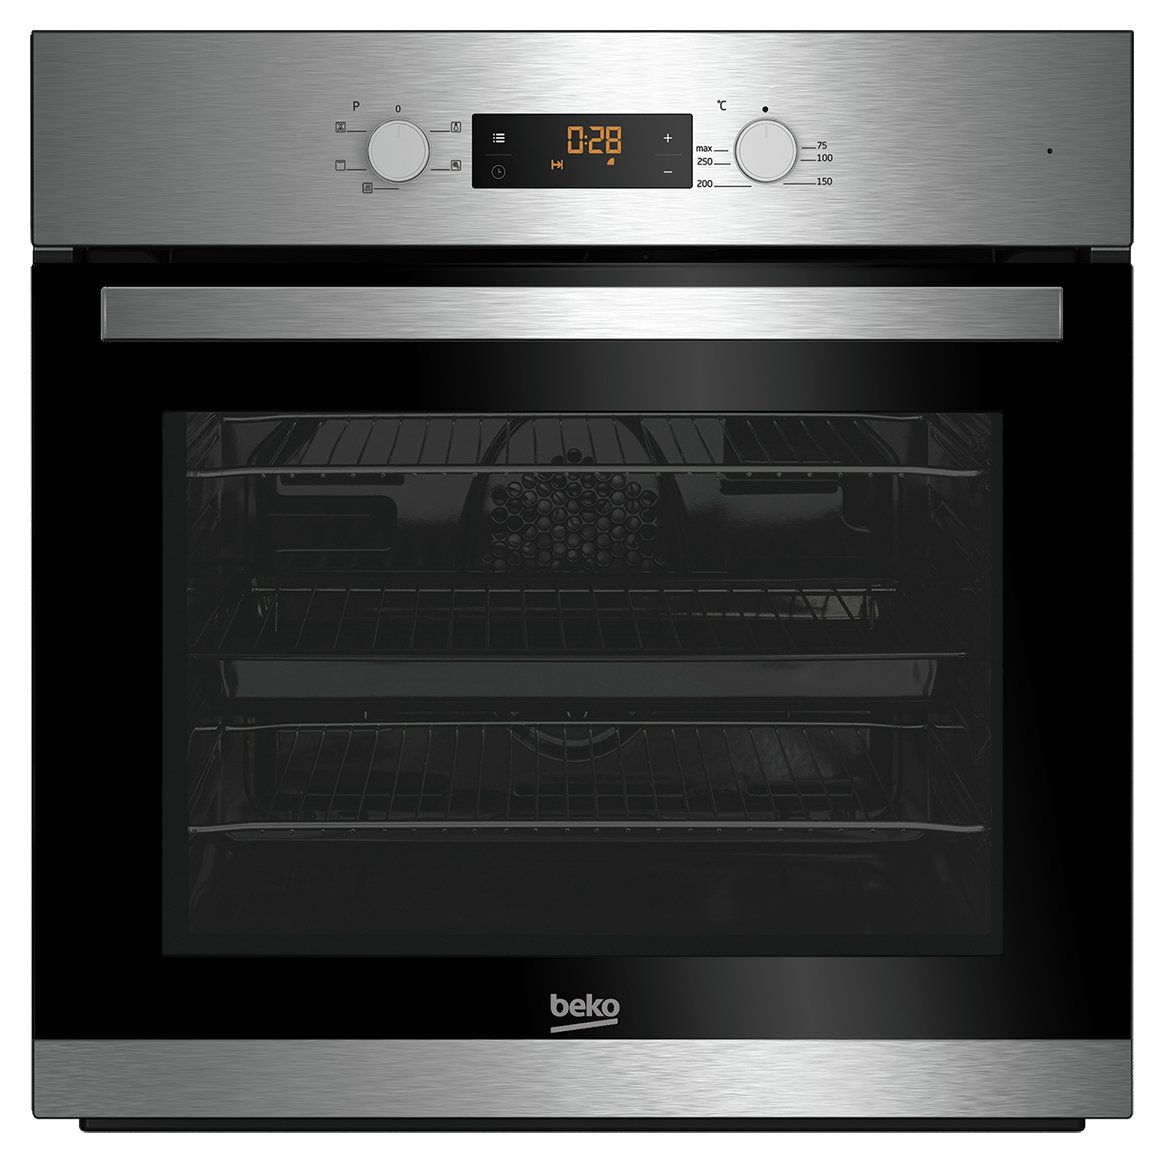 Image of Beko BAIF22300X Single Oven - Stainless Steel